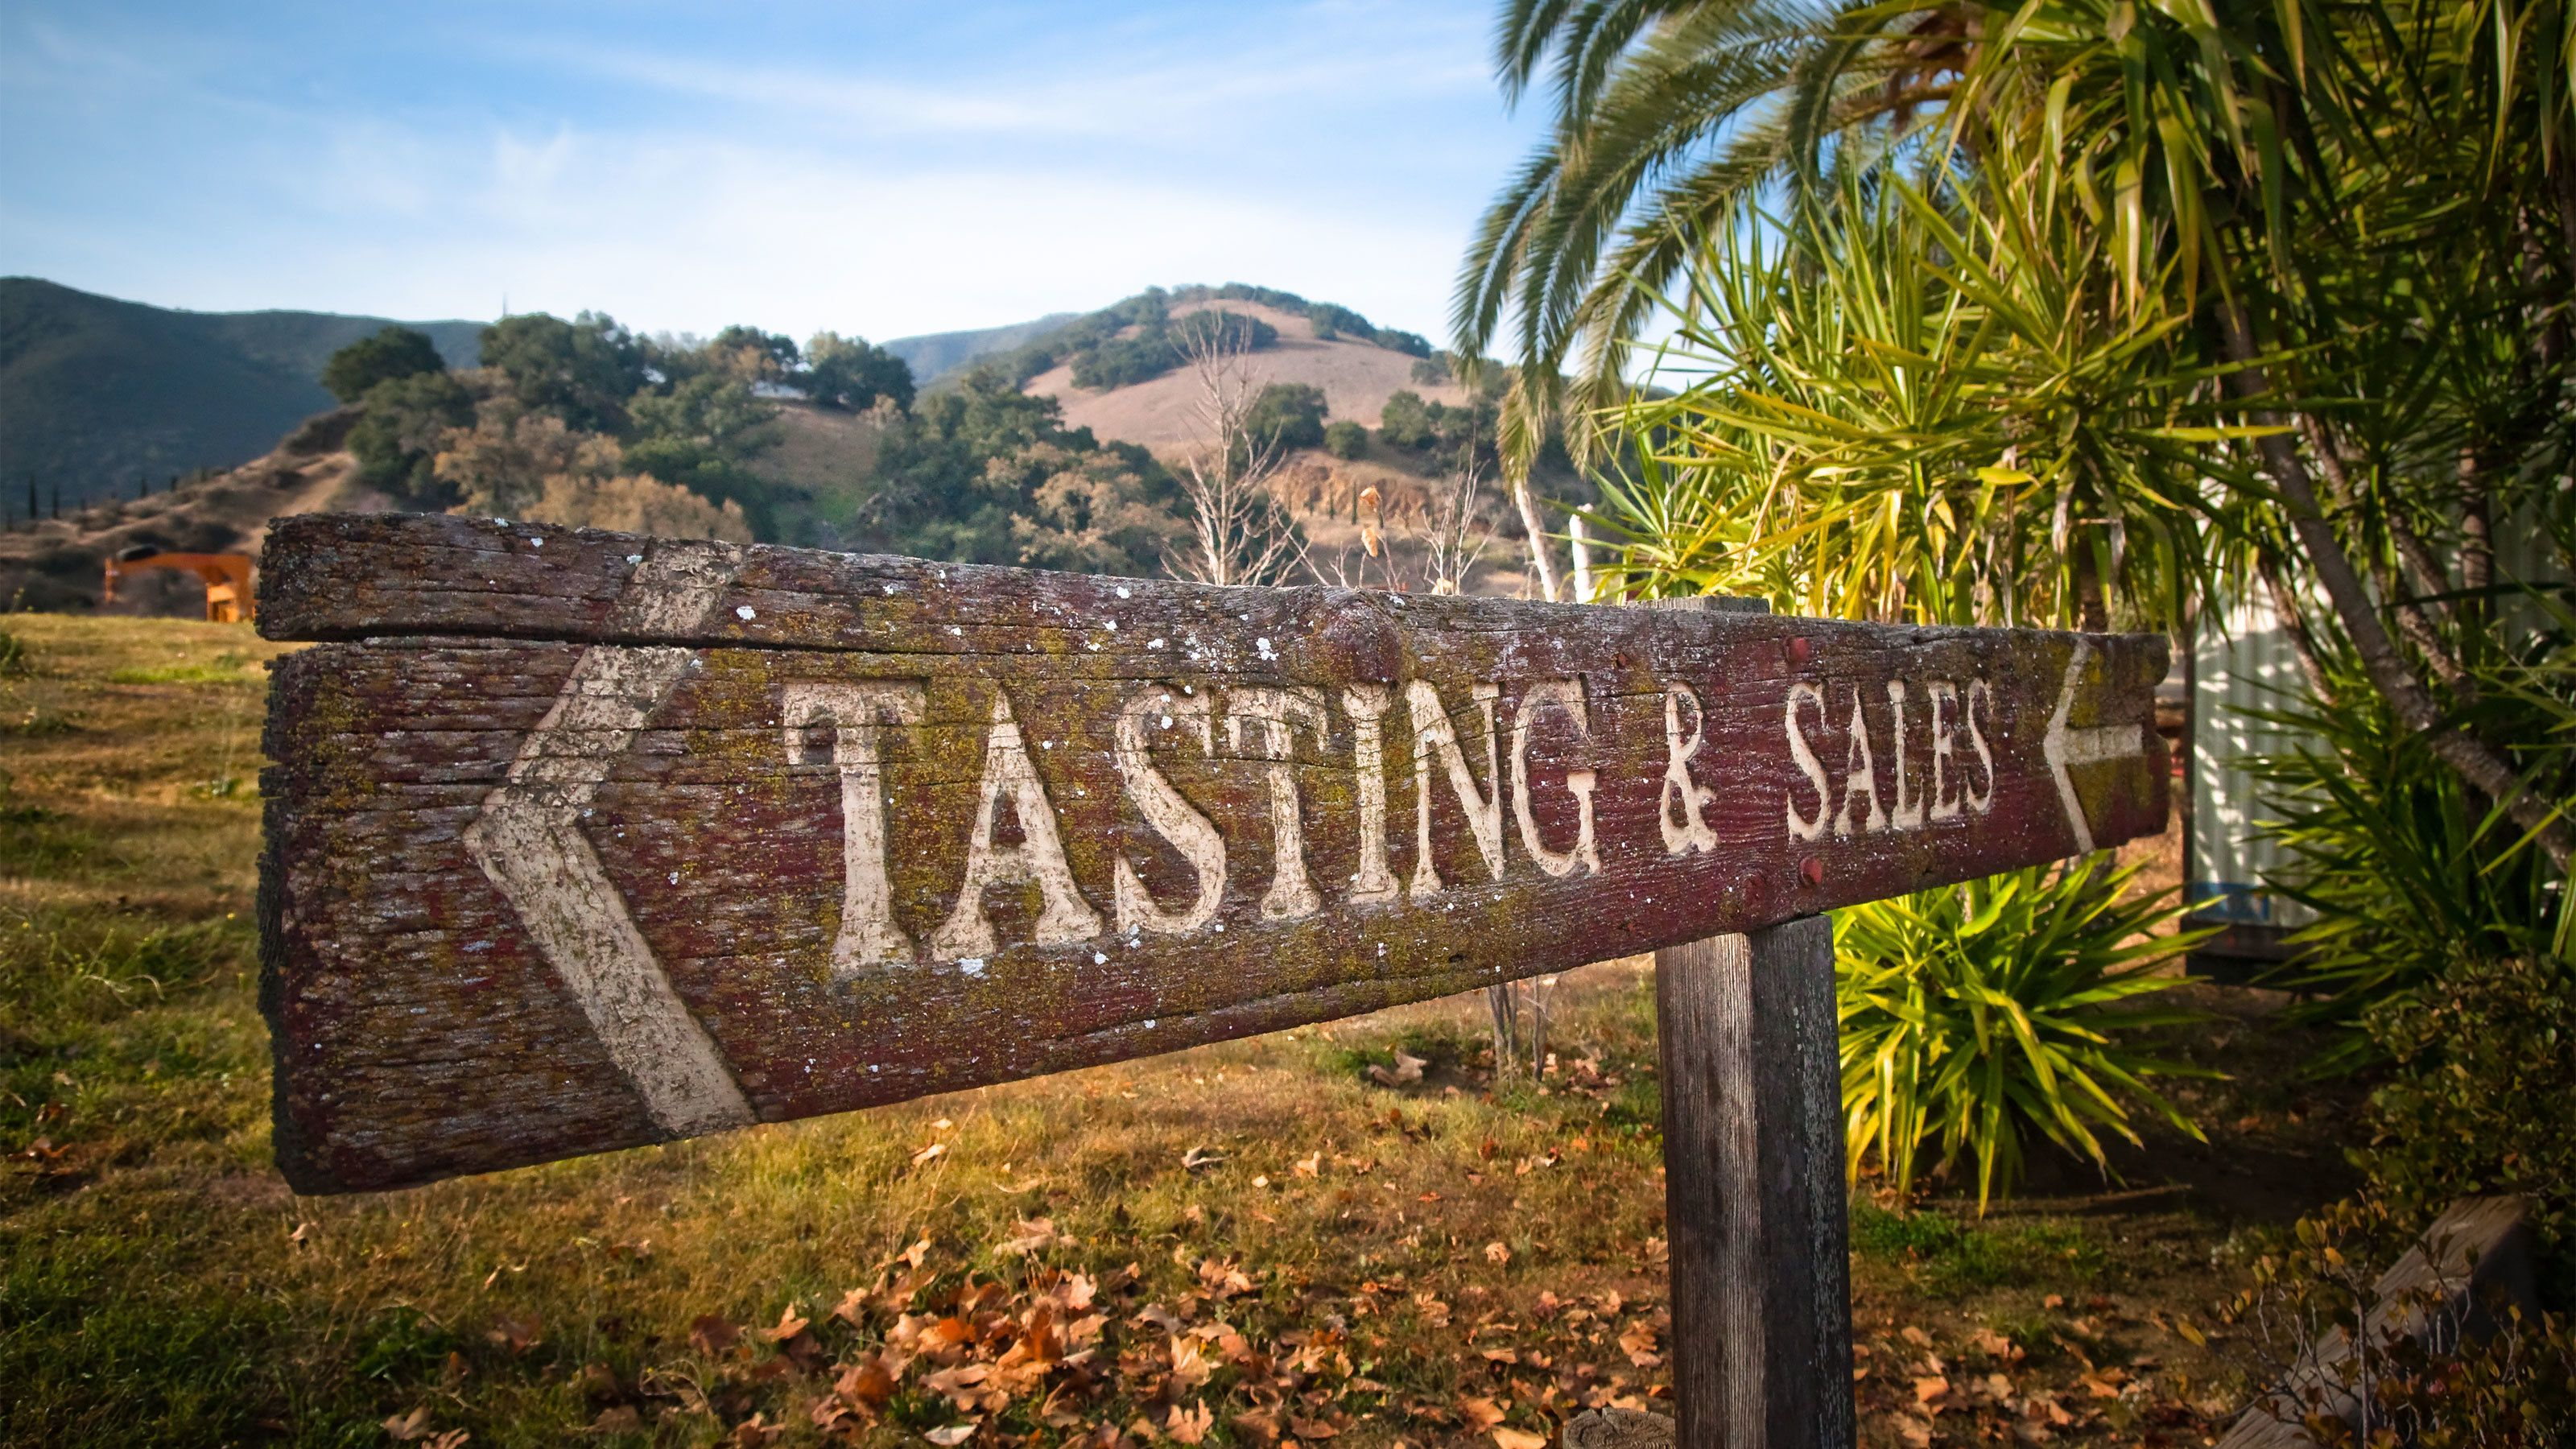 Tasting and Sales sign at a vineyard in San Francisco